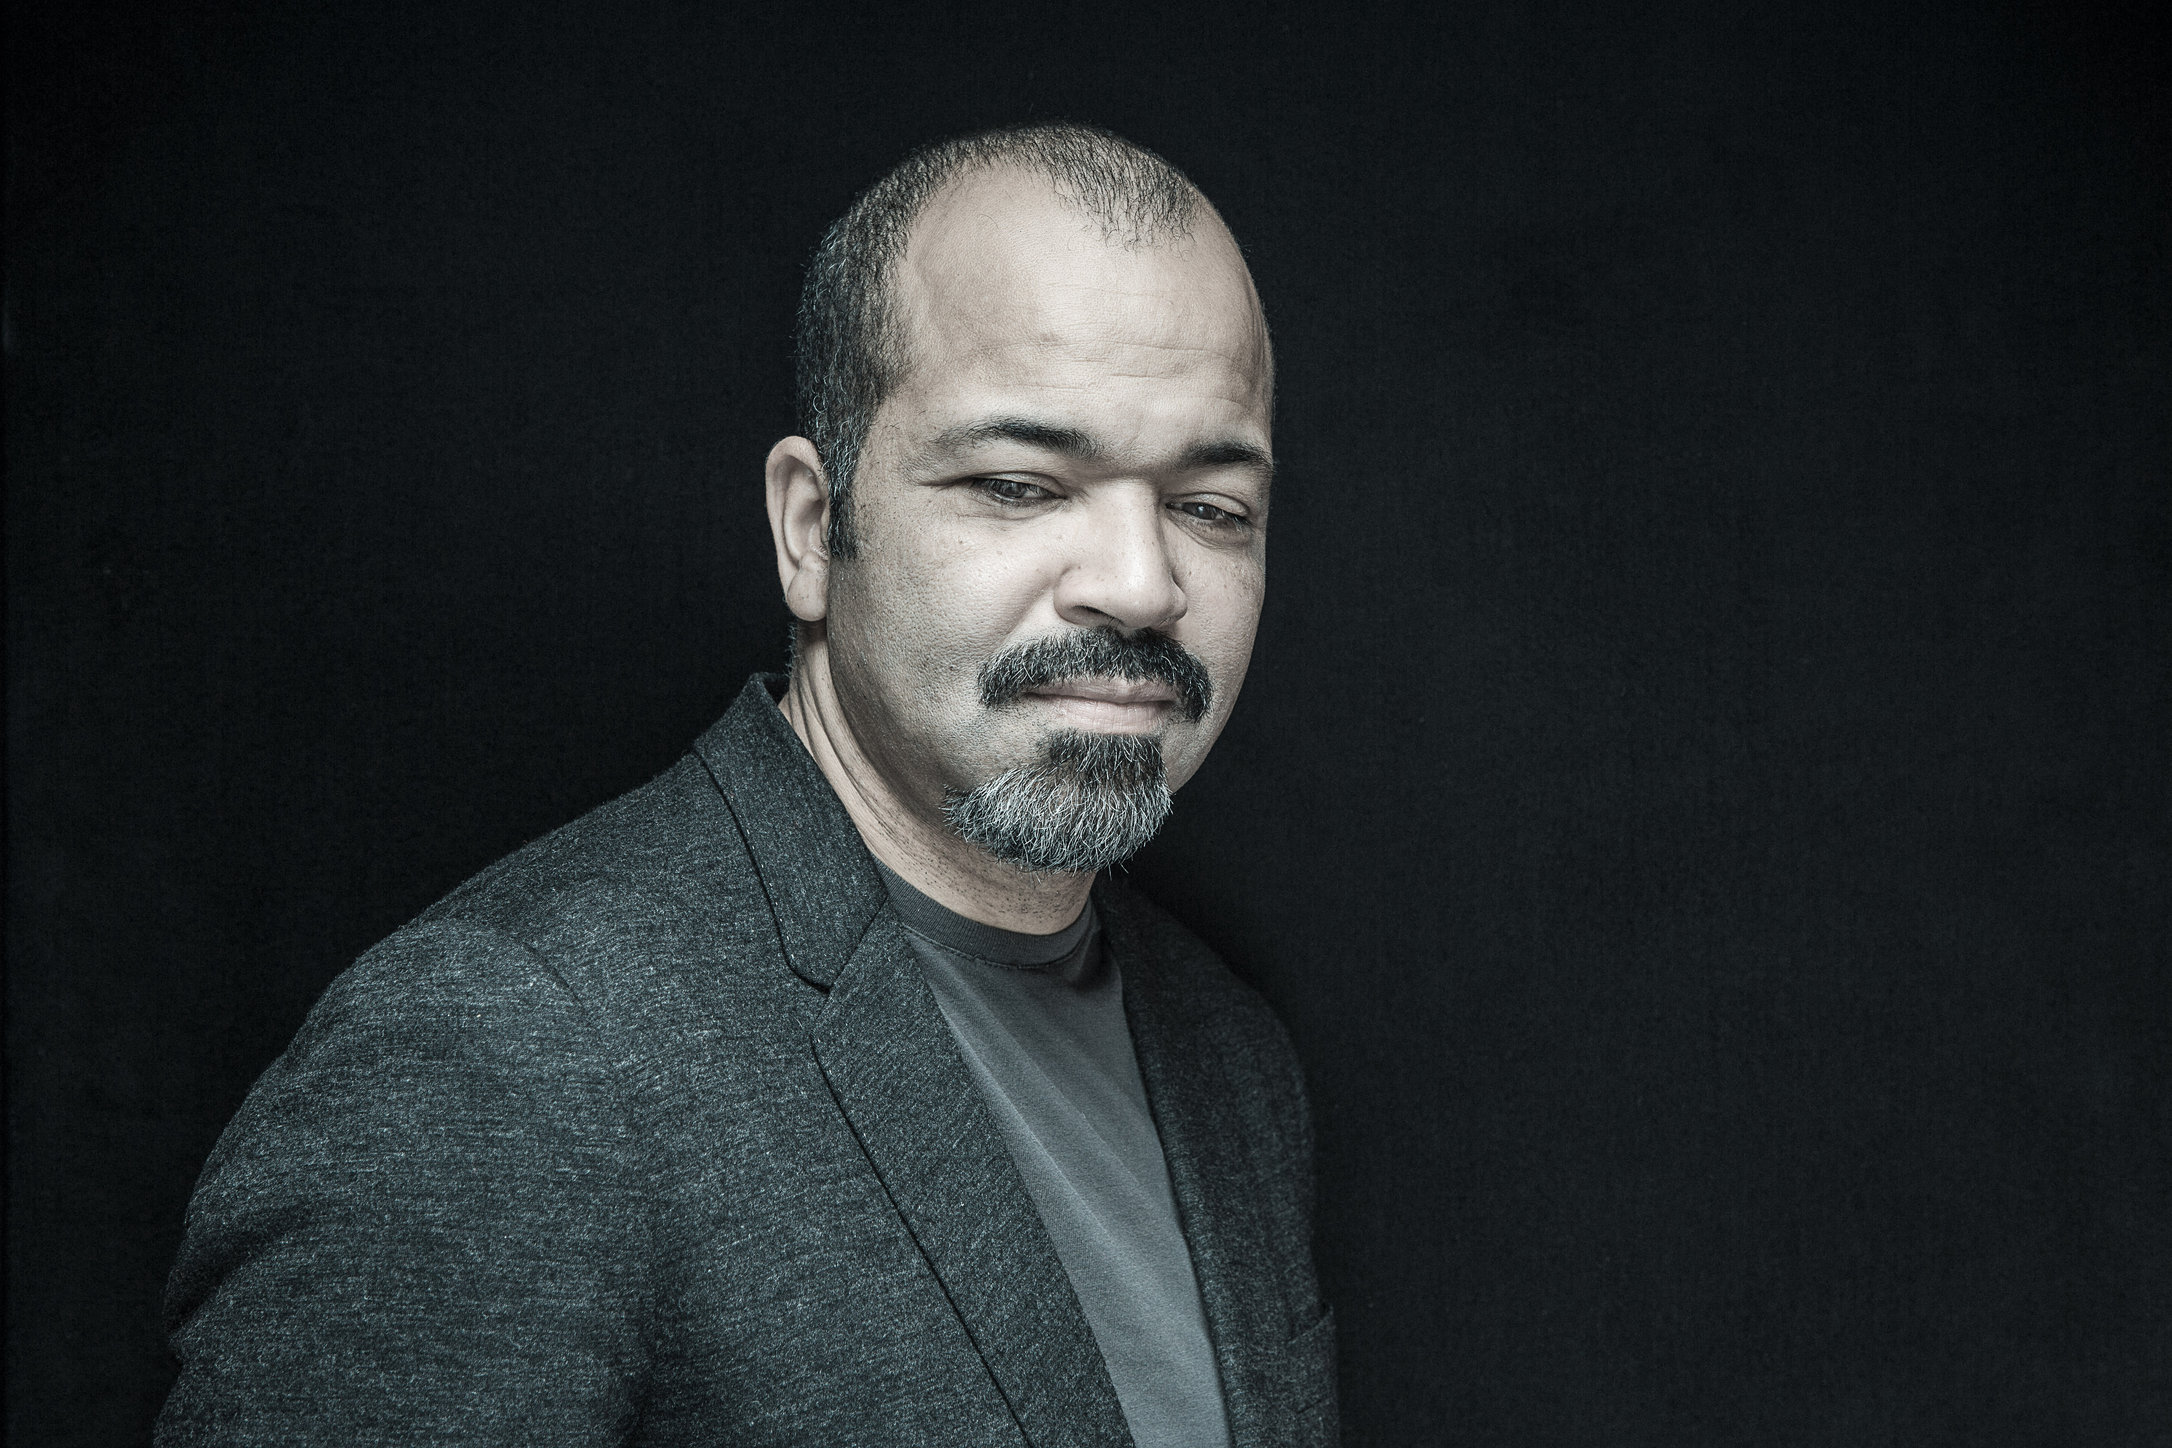 jeffrey wright, actor